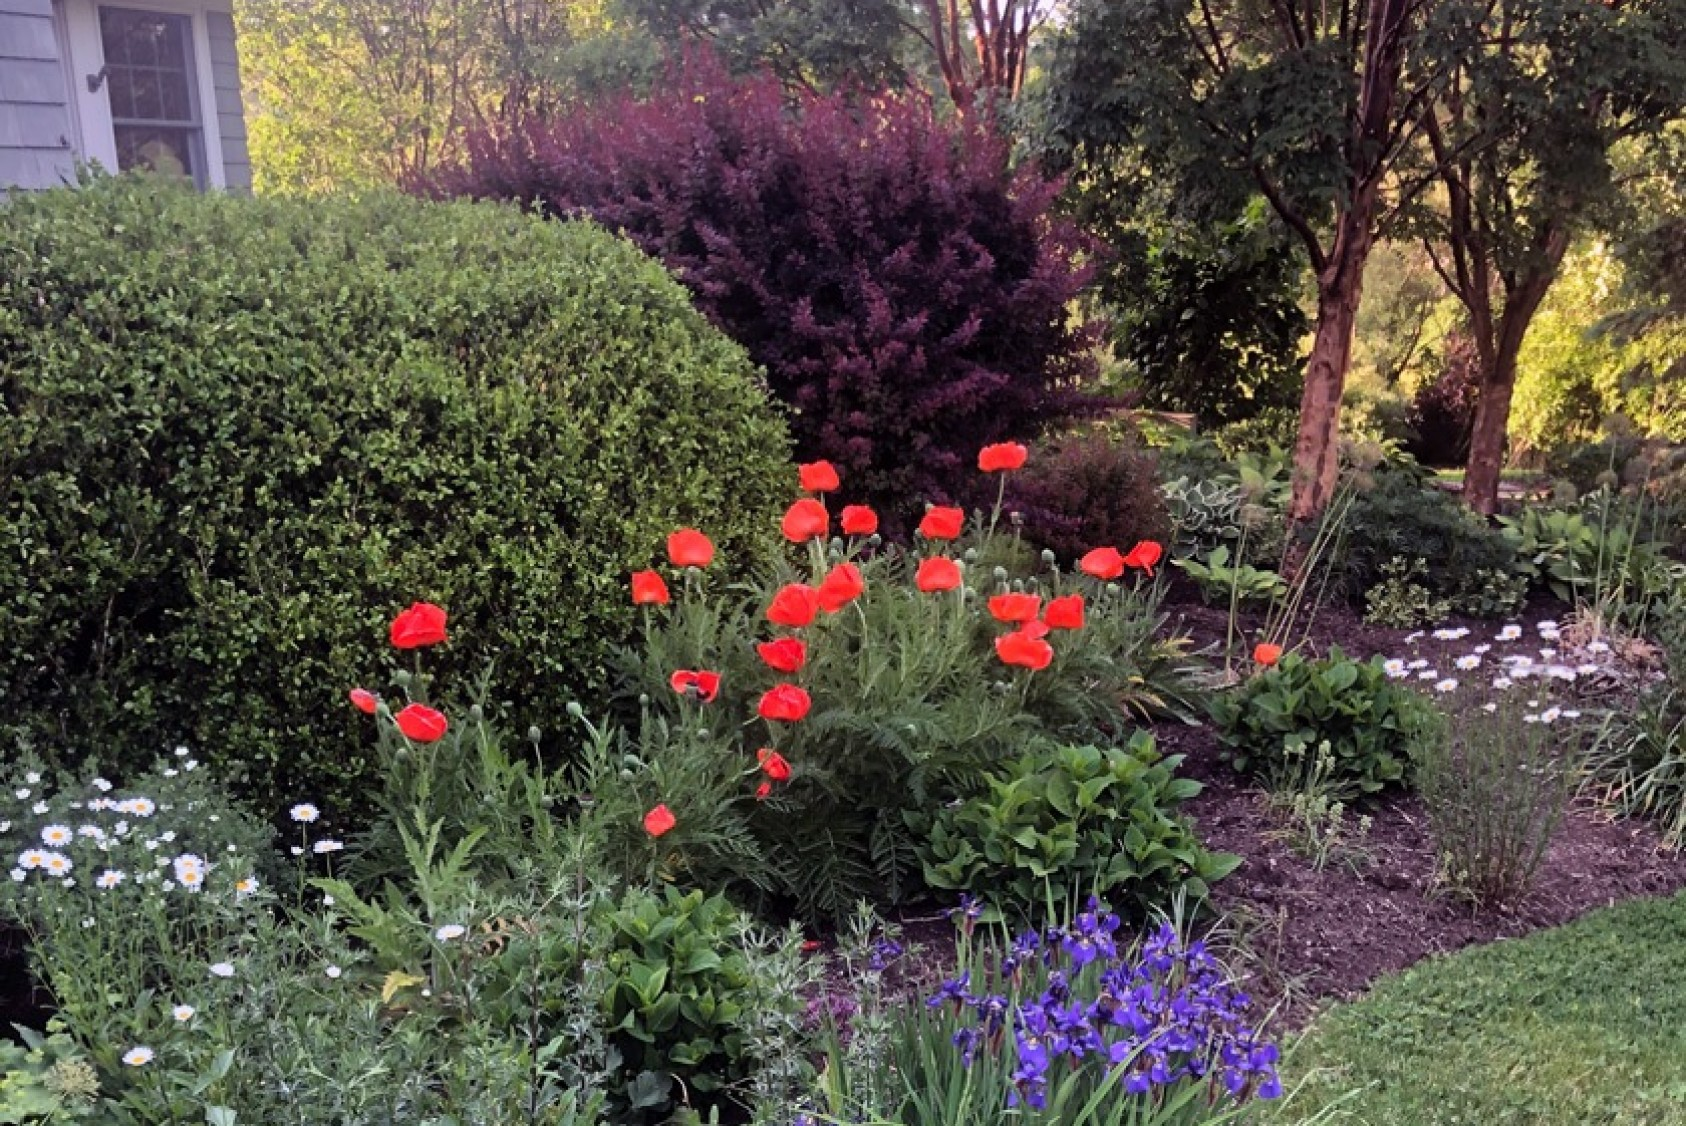 """Poppies and iris galore. Fred has many favorites: """"I have a wide array of alliums which remind me of my grandmother. I also enjoy our sea oats. I could go on and on,"""" he says."""